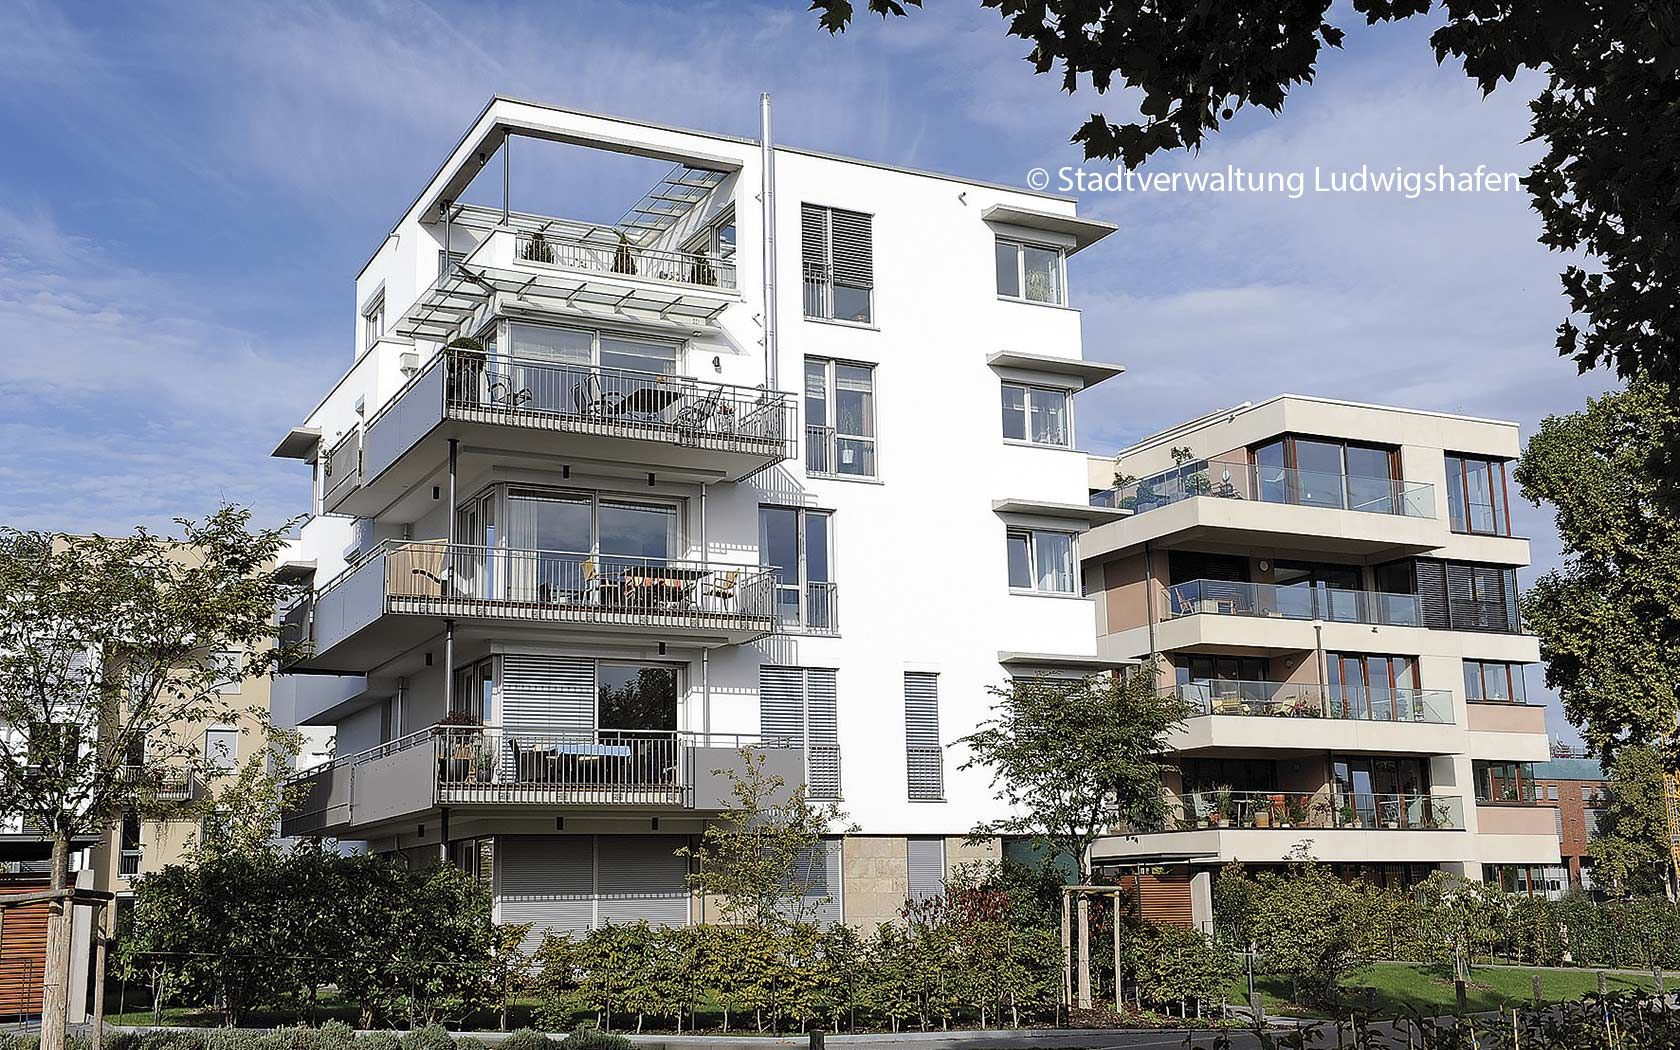 Dr. Eva Lohse Living and working in Ludwigshafen am Rhein